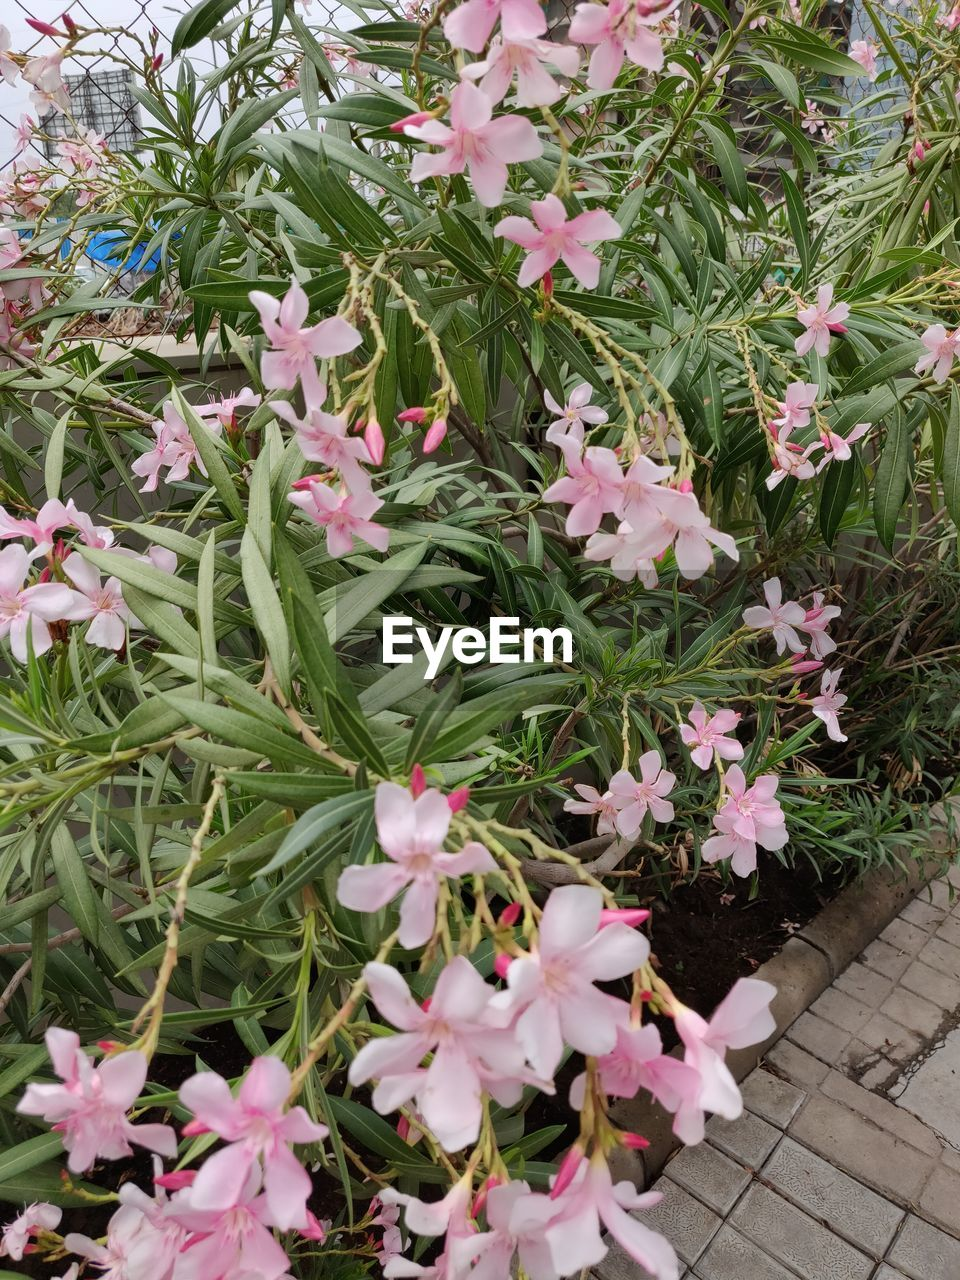 flower, plant, flowering plant, growth, freshness, pink color, beauty in nature, petal, leaf, vulnerability, plant part, fragility, no people, close-up, day, high angle view, nature, white color, green color, outdoors, flower head